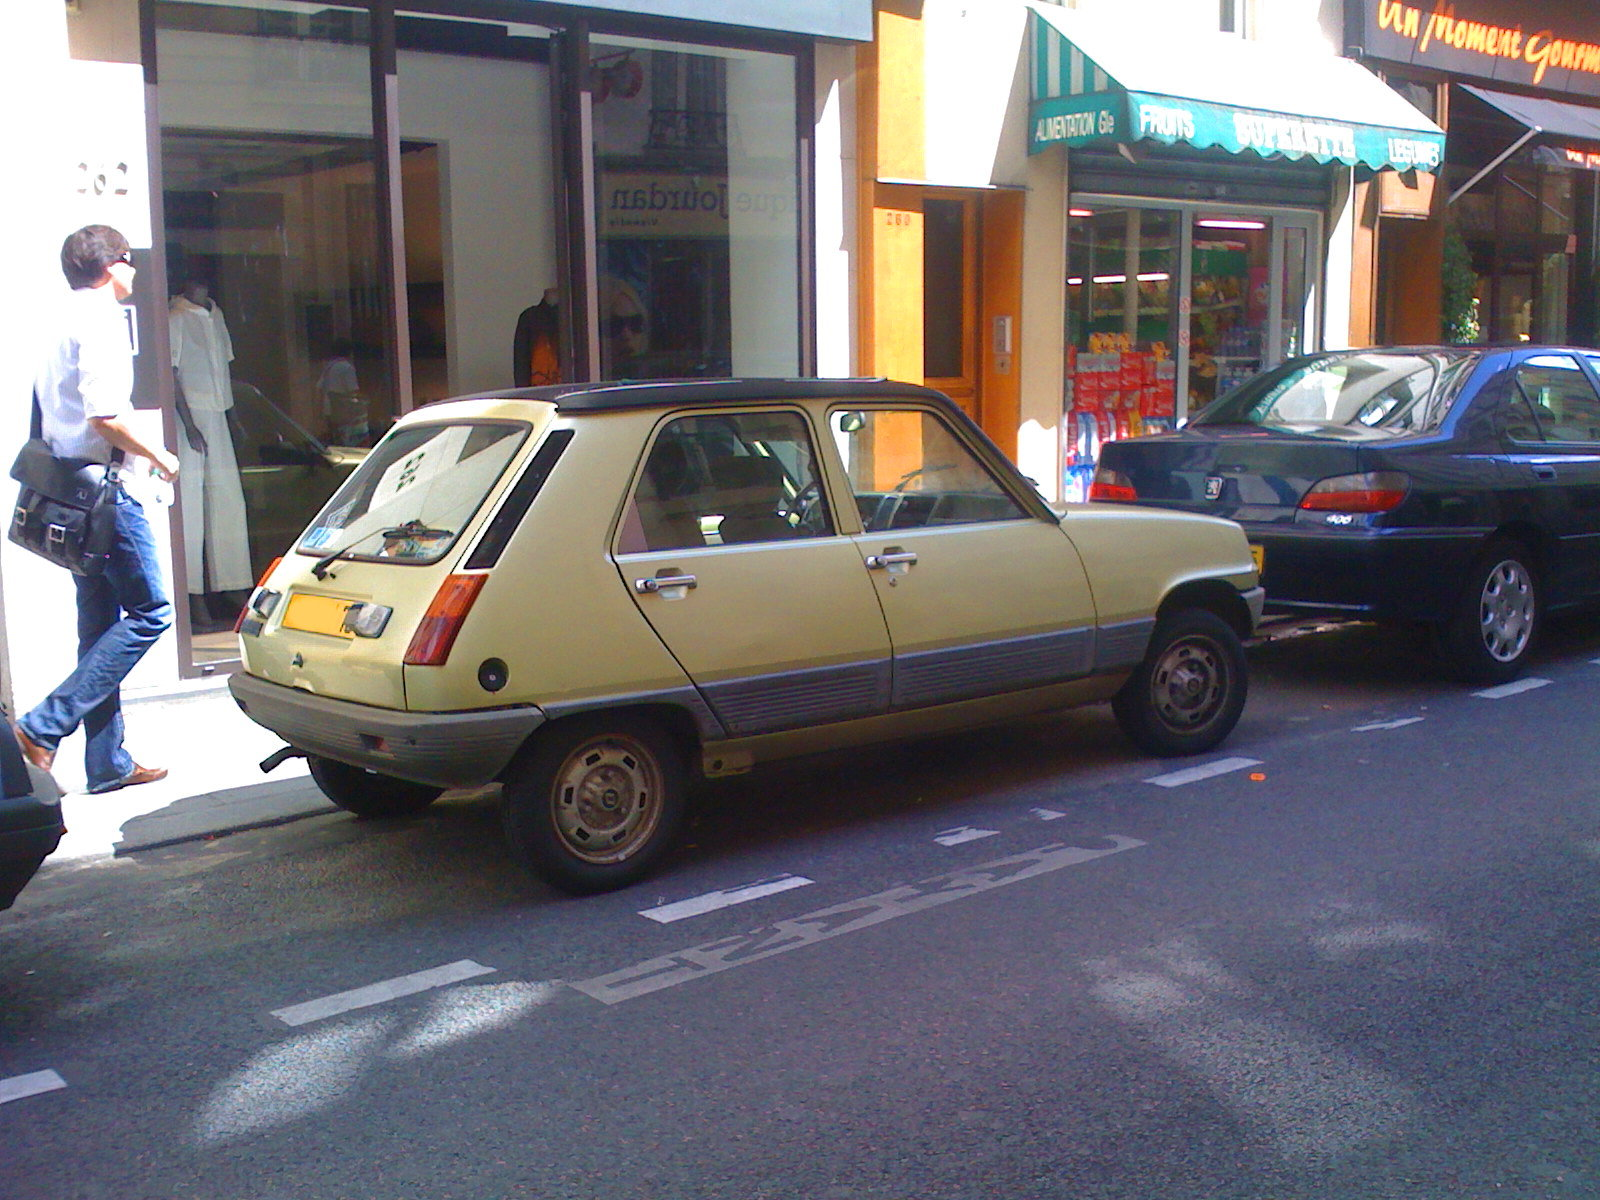 The birth of the Renault 5 in